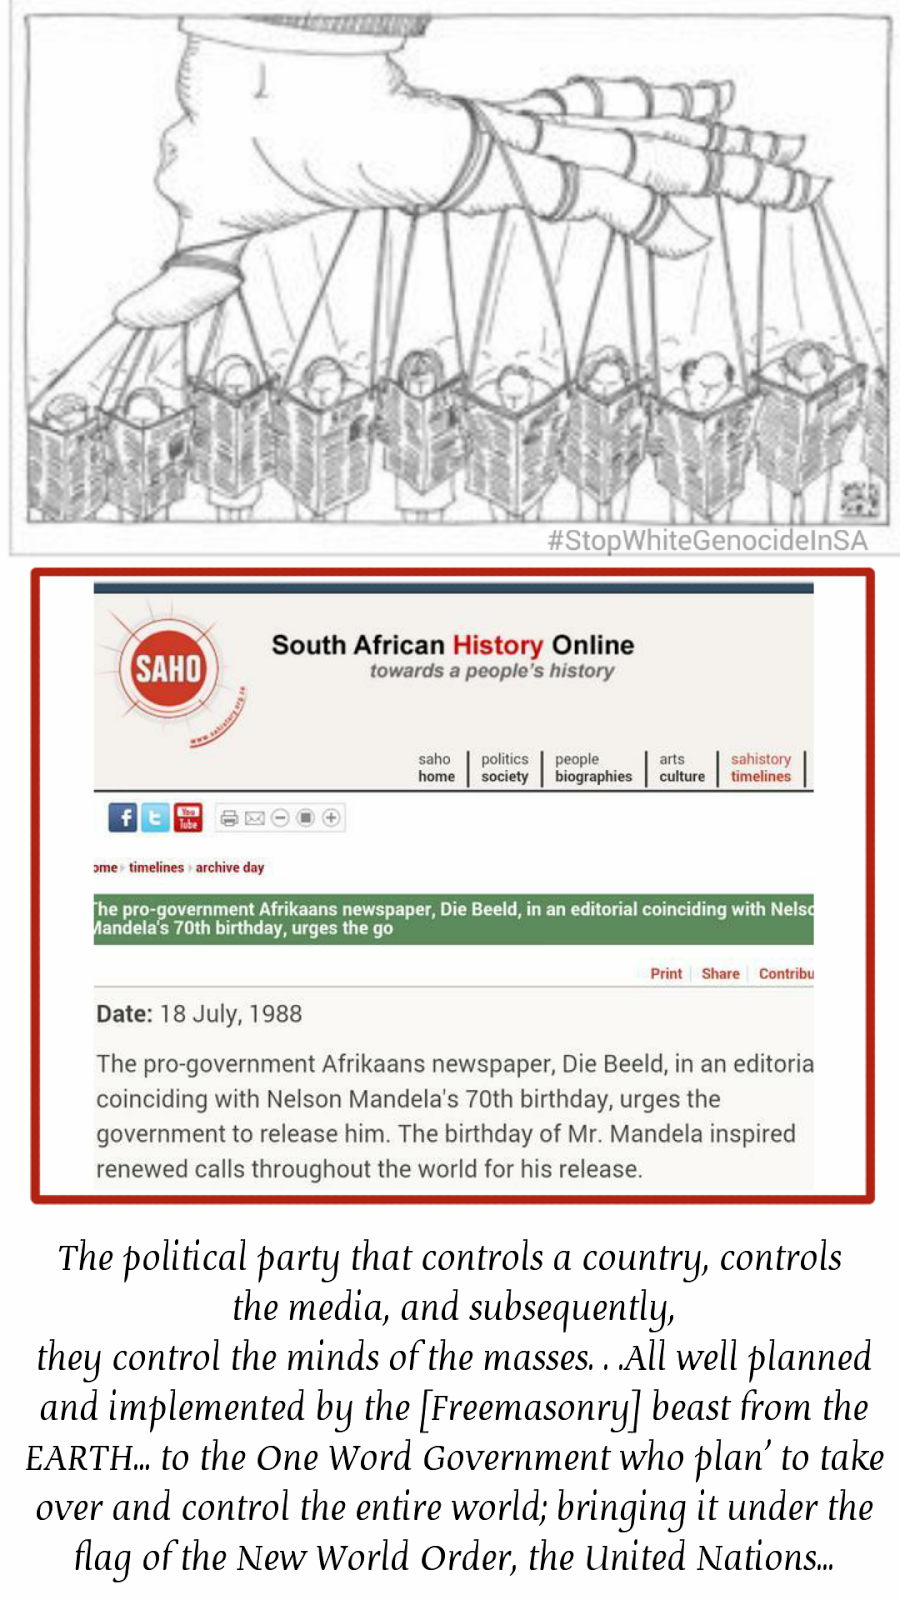 Why the fuss about dismissal journalists in South Africa...?